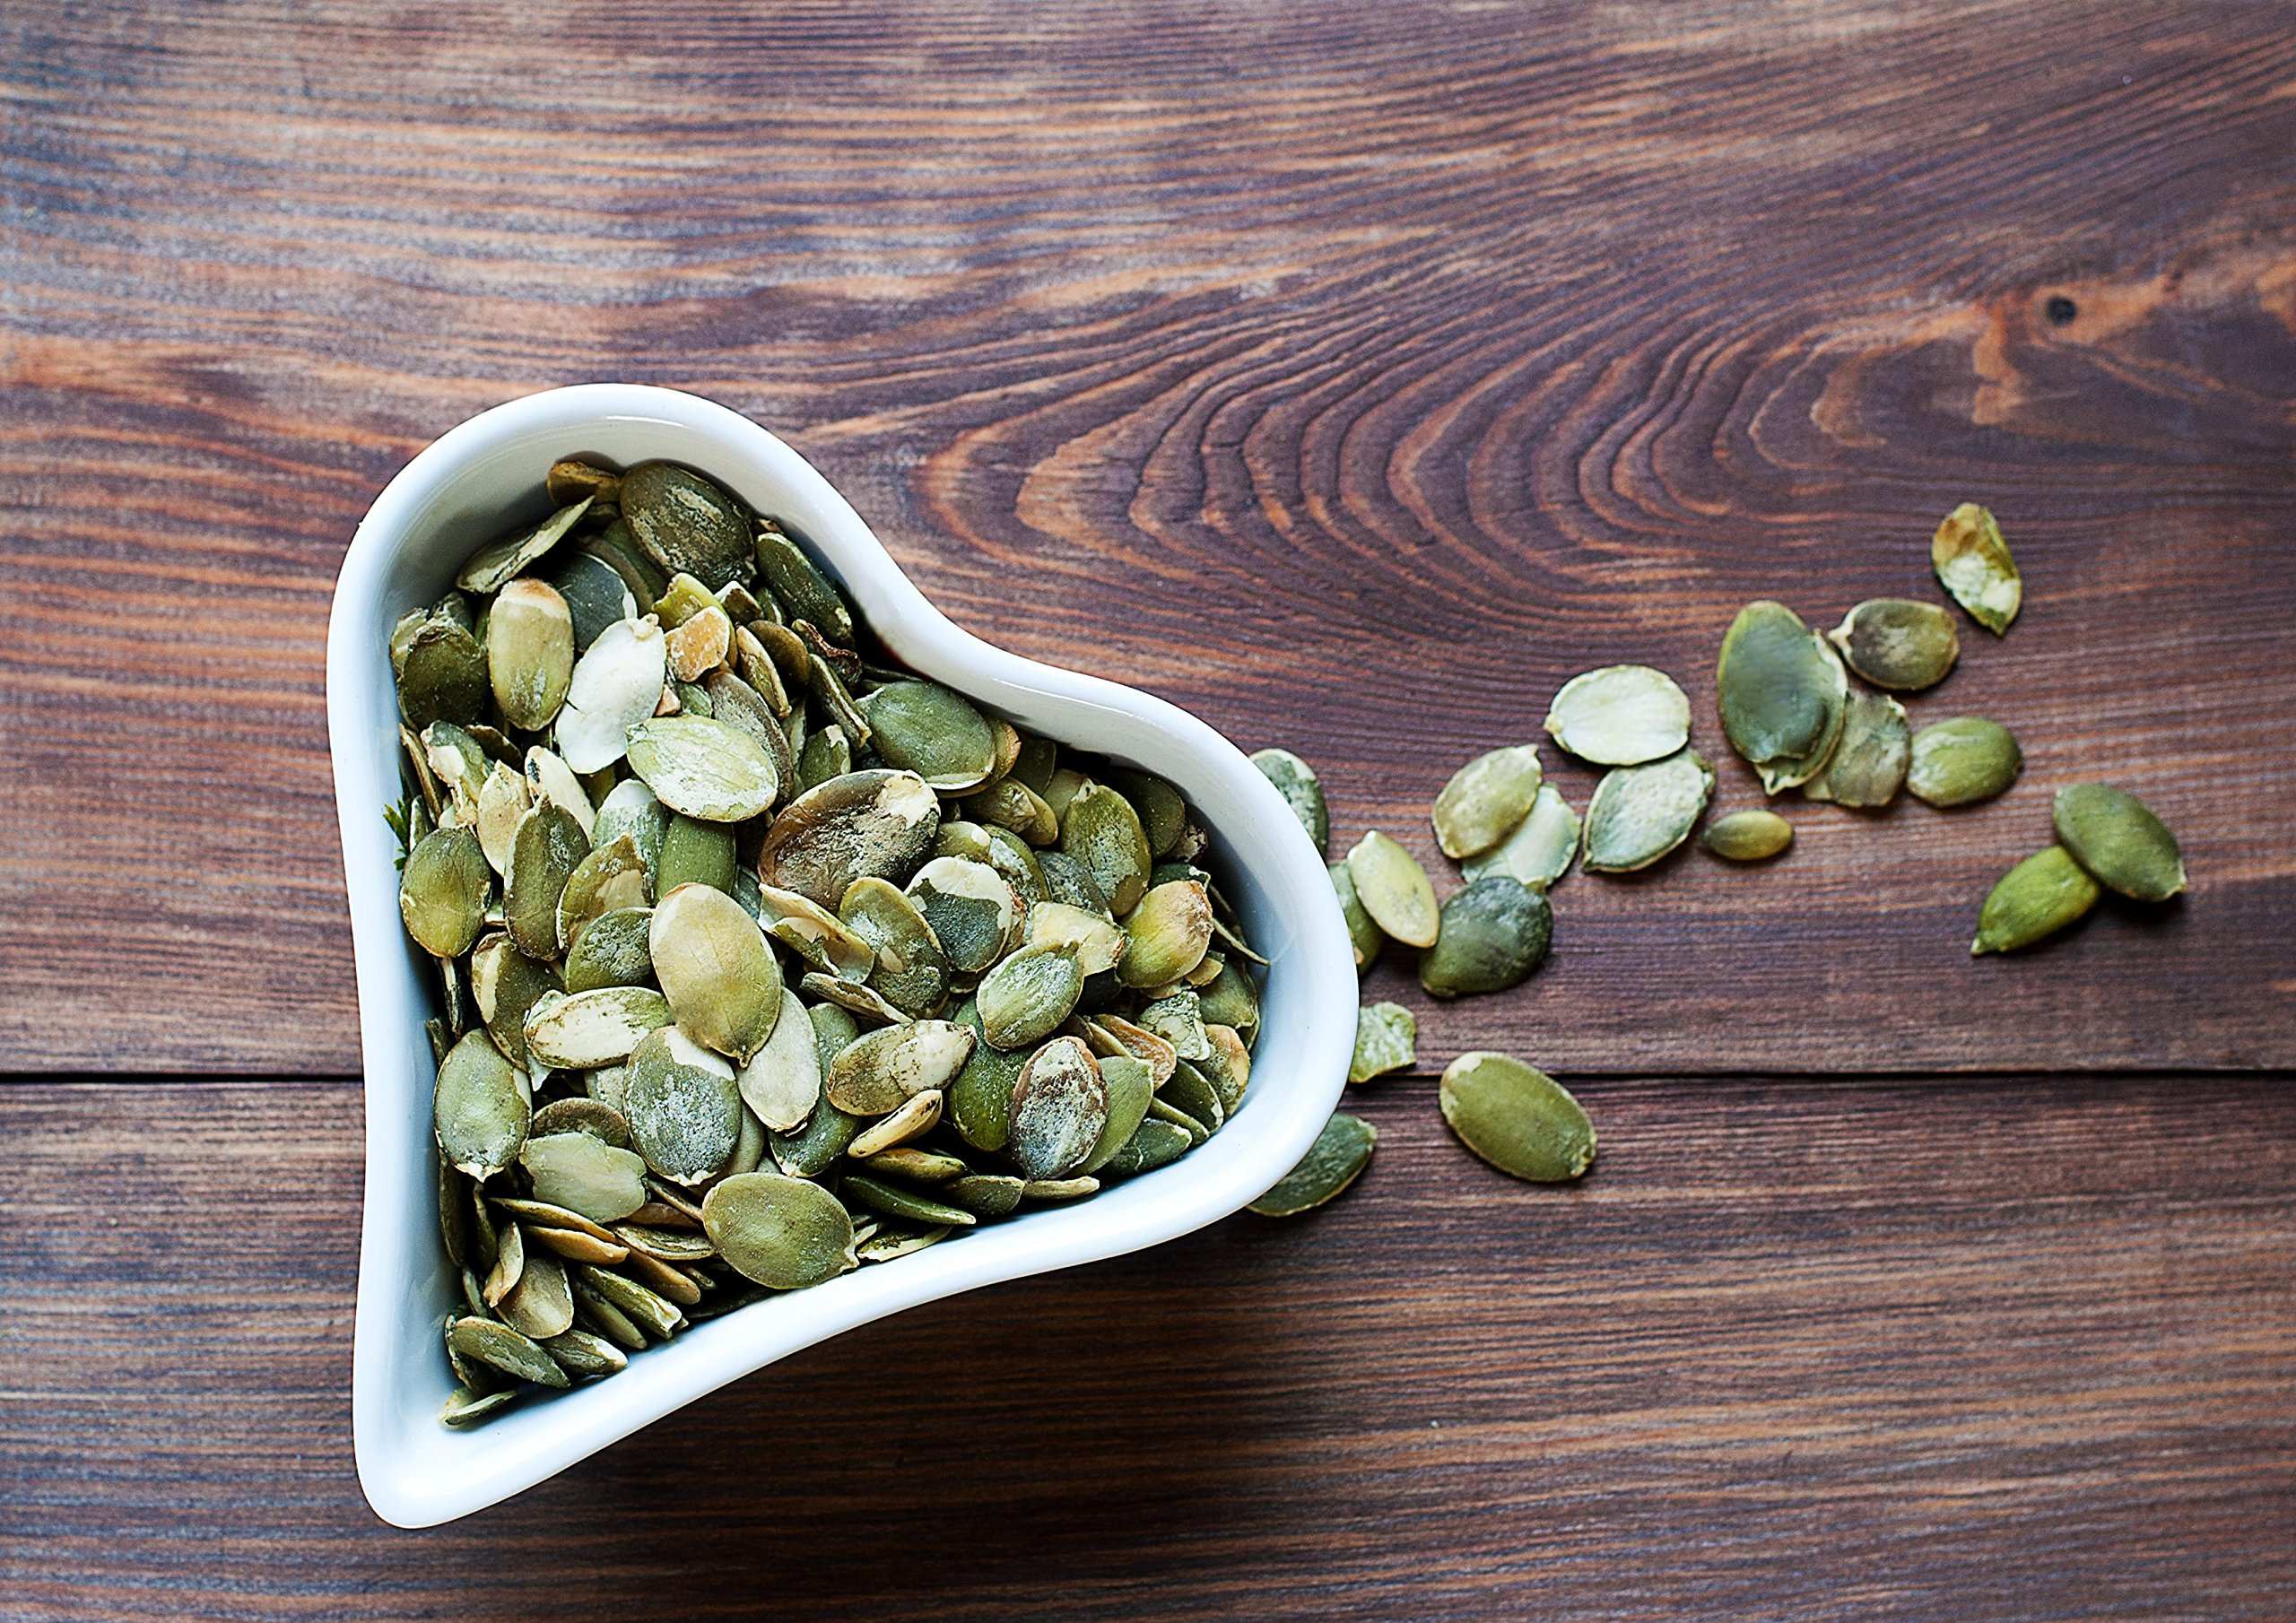 Organic Dry Roasted Pumpkin Seeds with Sea Salt, 1 Pound — Non-GMO Kernels, Pepitas, Kosher, Vegan, No Shell, Healthy Snack, Bulk by Food to Live (Image #5)